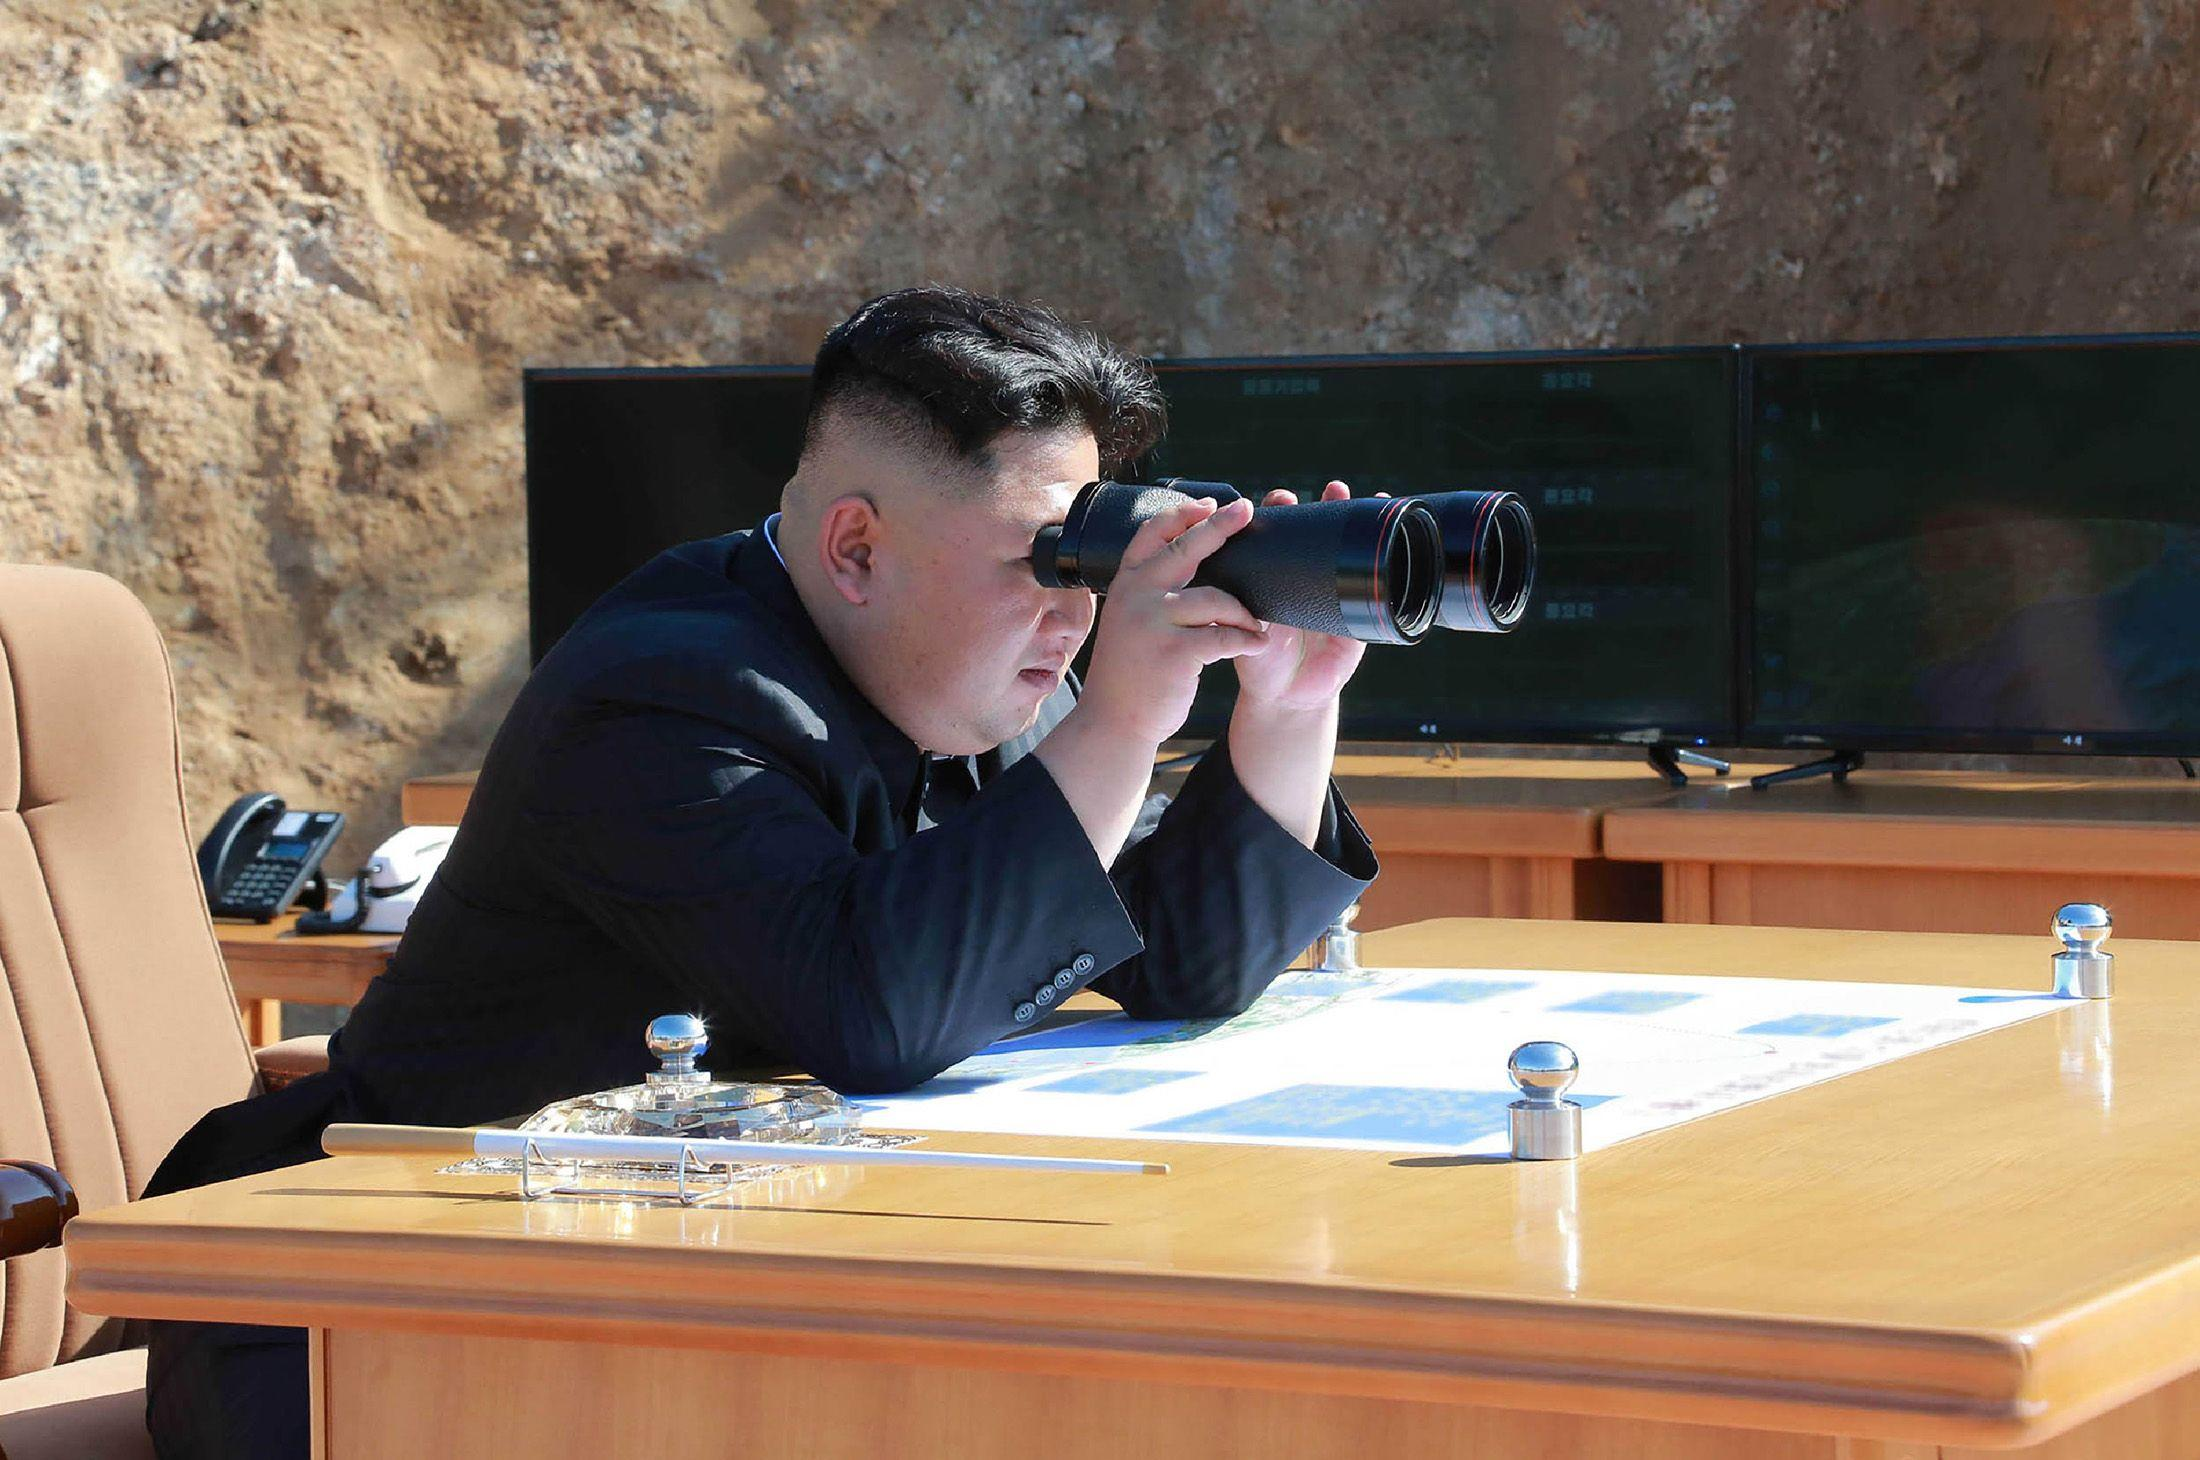 North Korea Reminds U.S. of Year-End Deadline With Missile Test